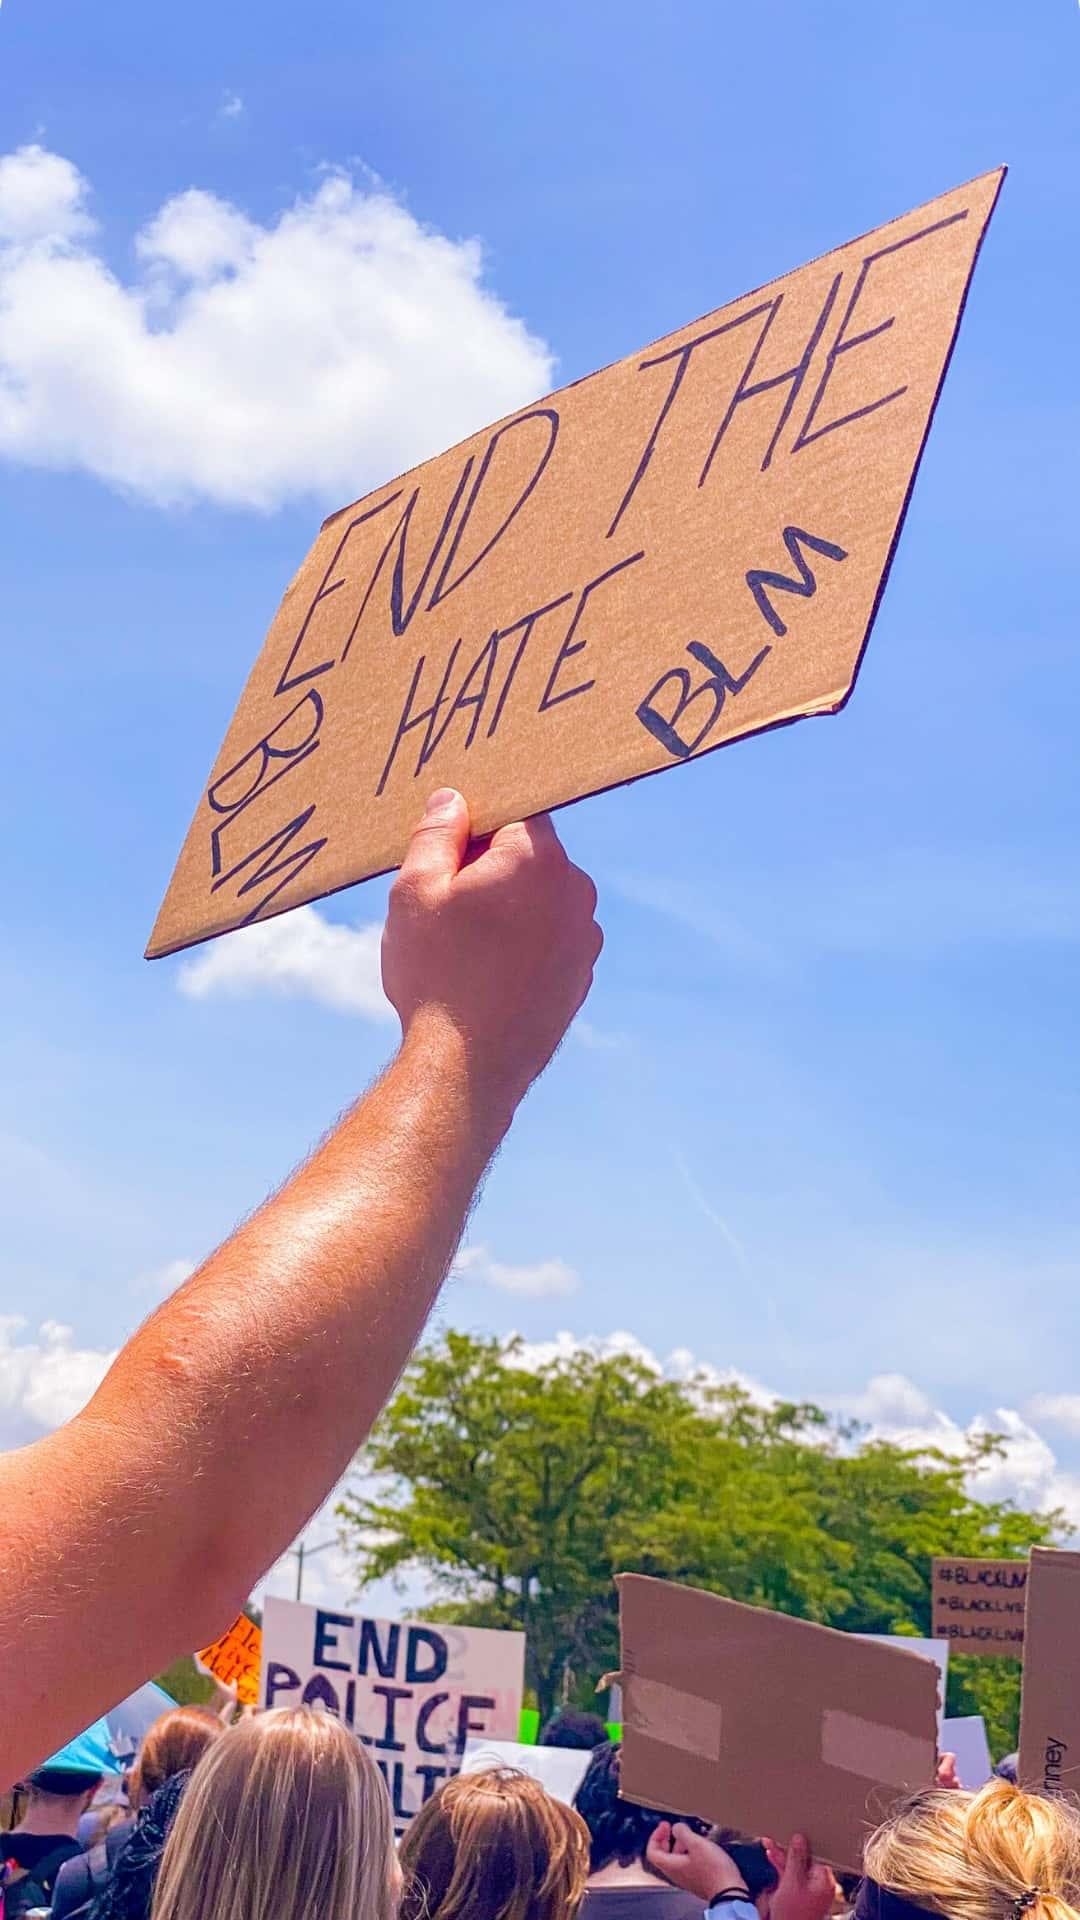 end the hate protest sign